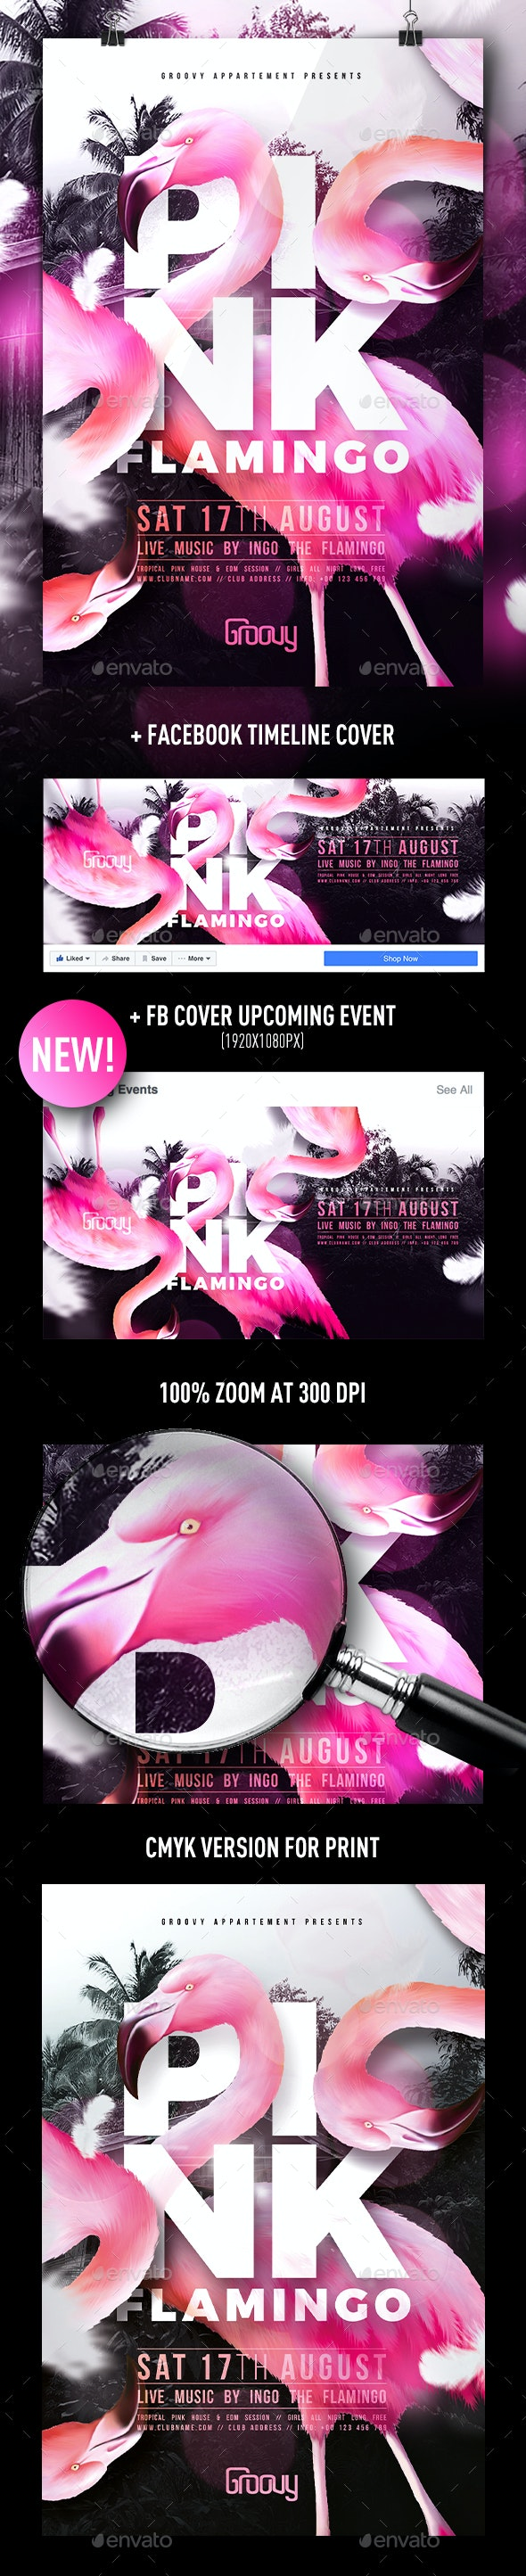 Pink Flamingo Flyer - Clubs & Parties Events